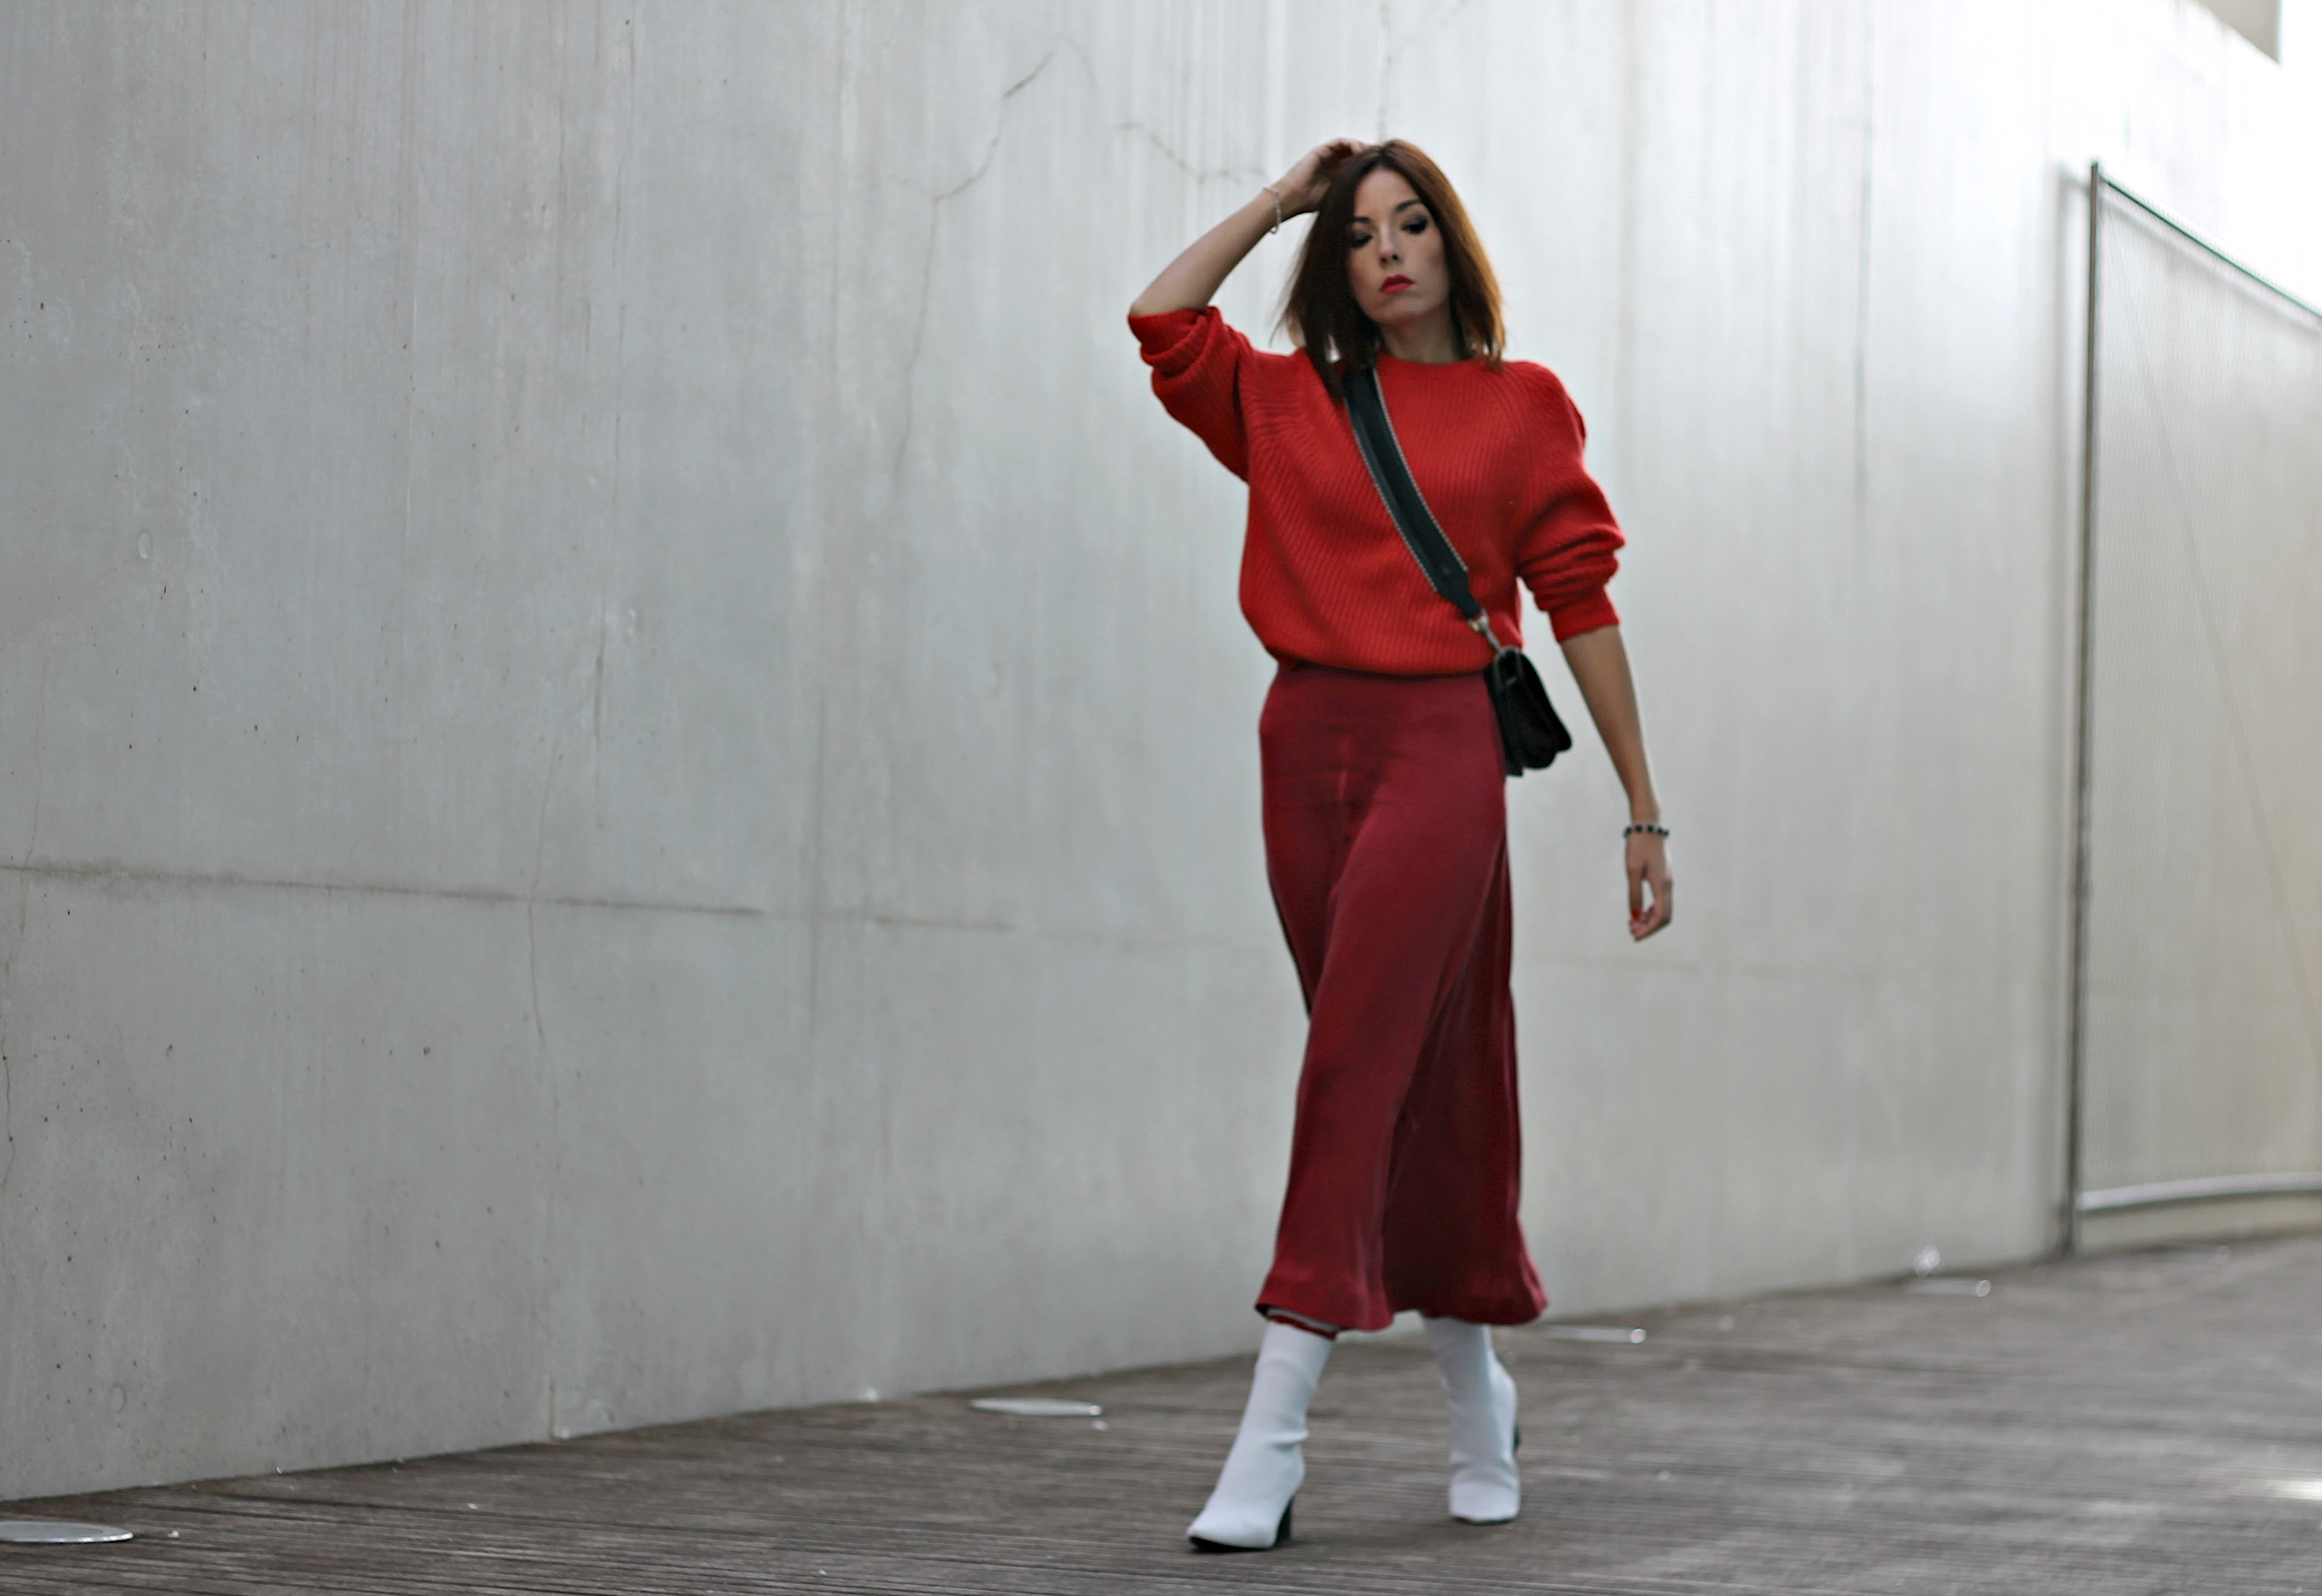 Noleggio abiti moda, theladycracy.it, elisa bellino, fashion blog 2017, fashion blogger più seguite 2017, blogger moda italiane instagram 2017, blogger più seguite instagram 2017, look rosso inverno 2017, total look rosso inverno 2017, stivali zara bianchi inverno 2017, come vestire rosso 2017, elisa bellino